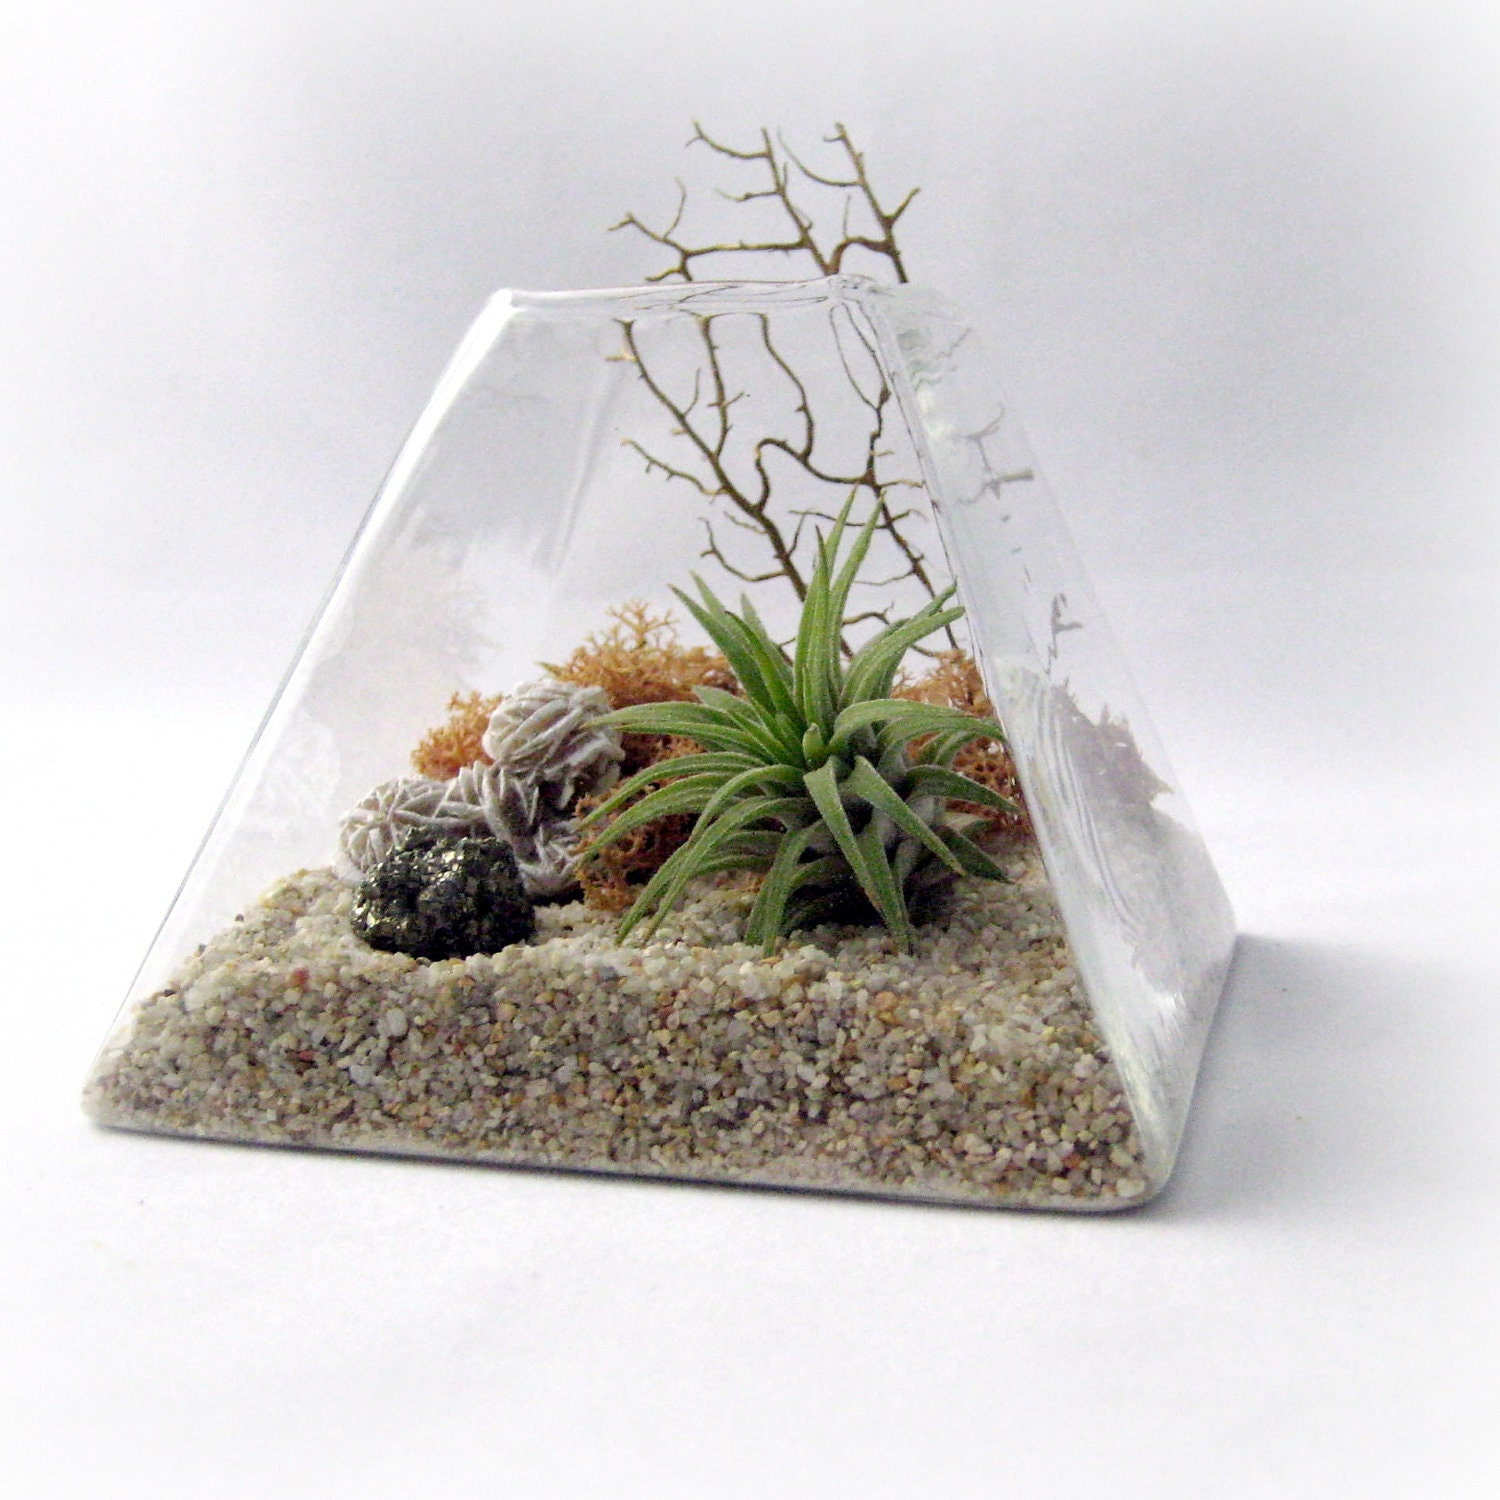 peach pyrite pyramid terrarium air plant terrarium by seaandasters etsy. Black Bedroom Furniture Sets. Home Design Ideas